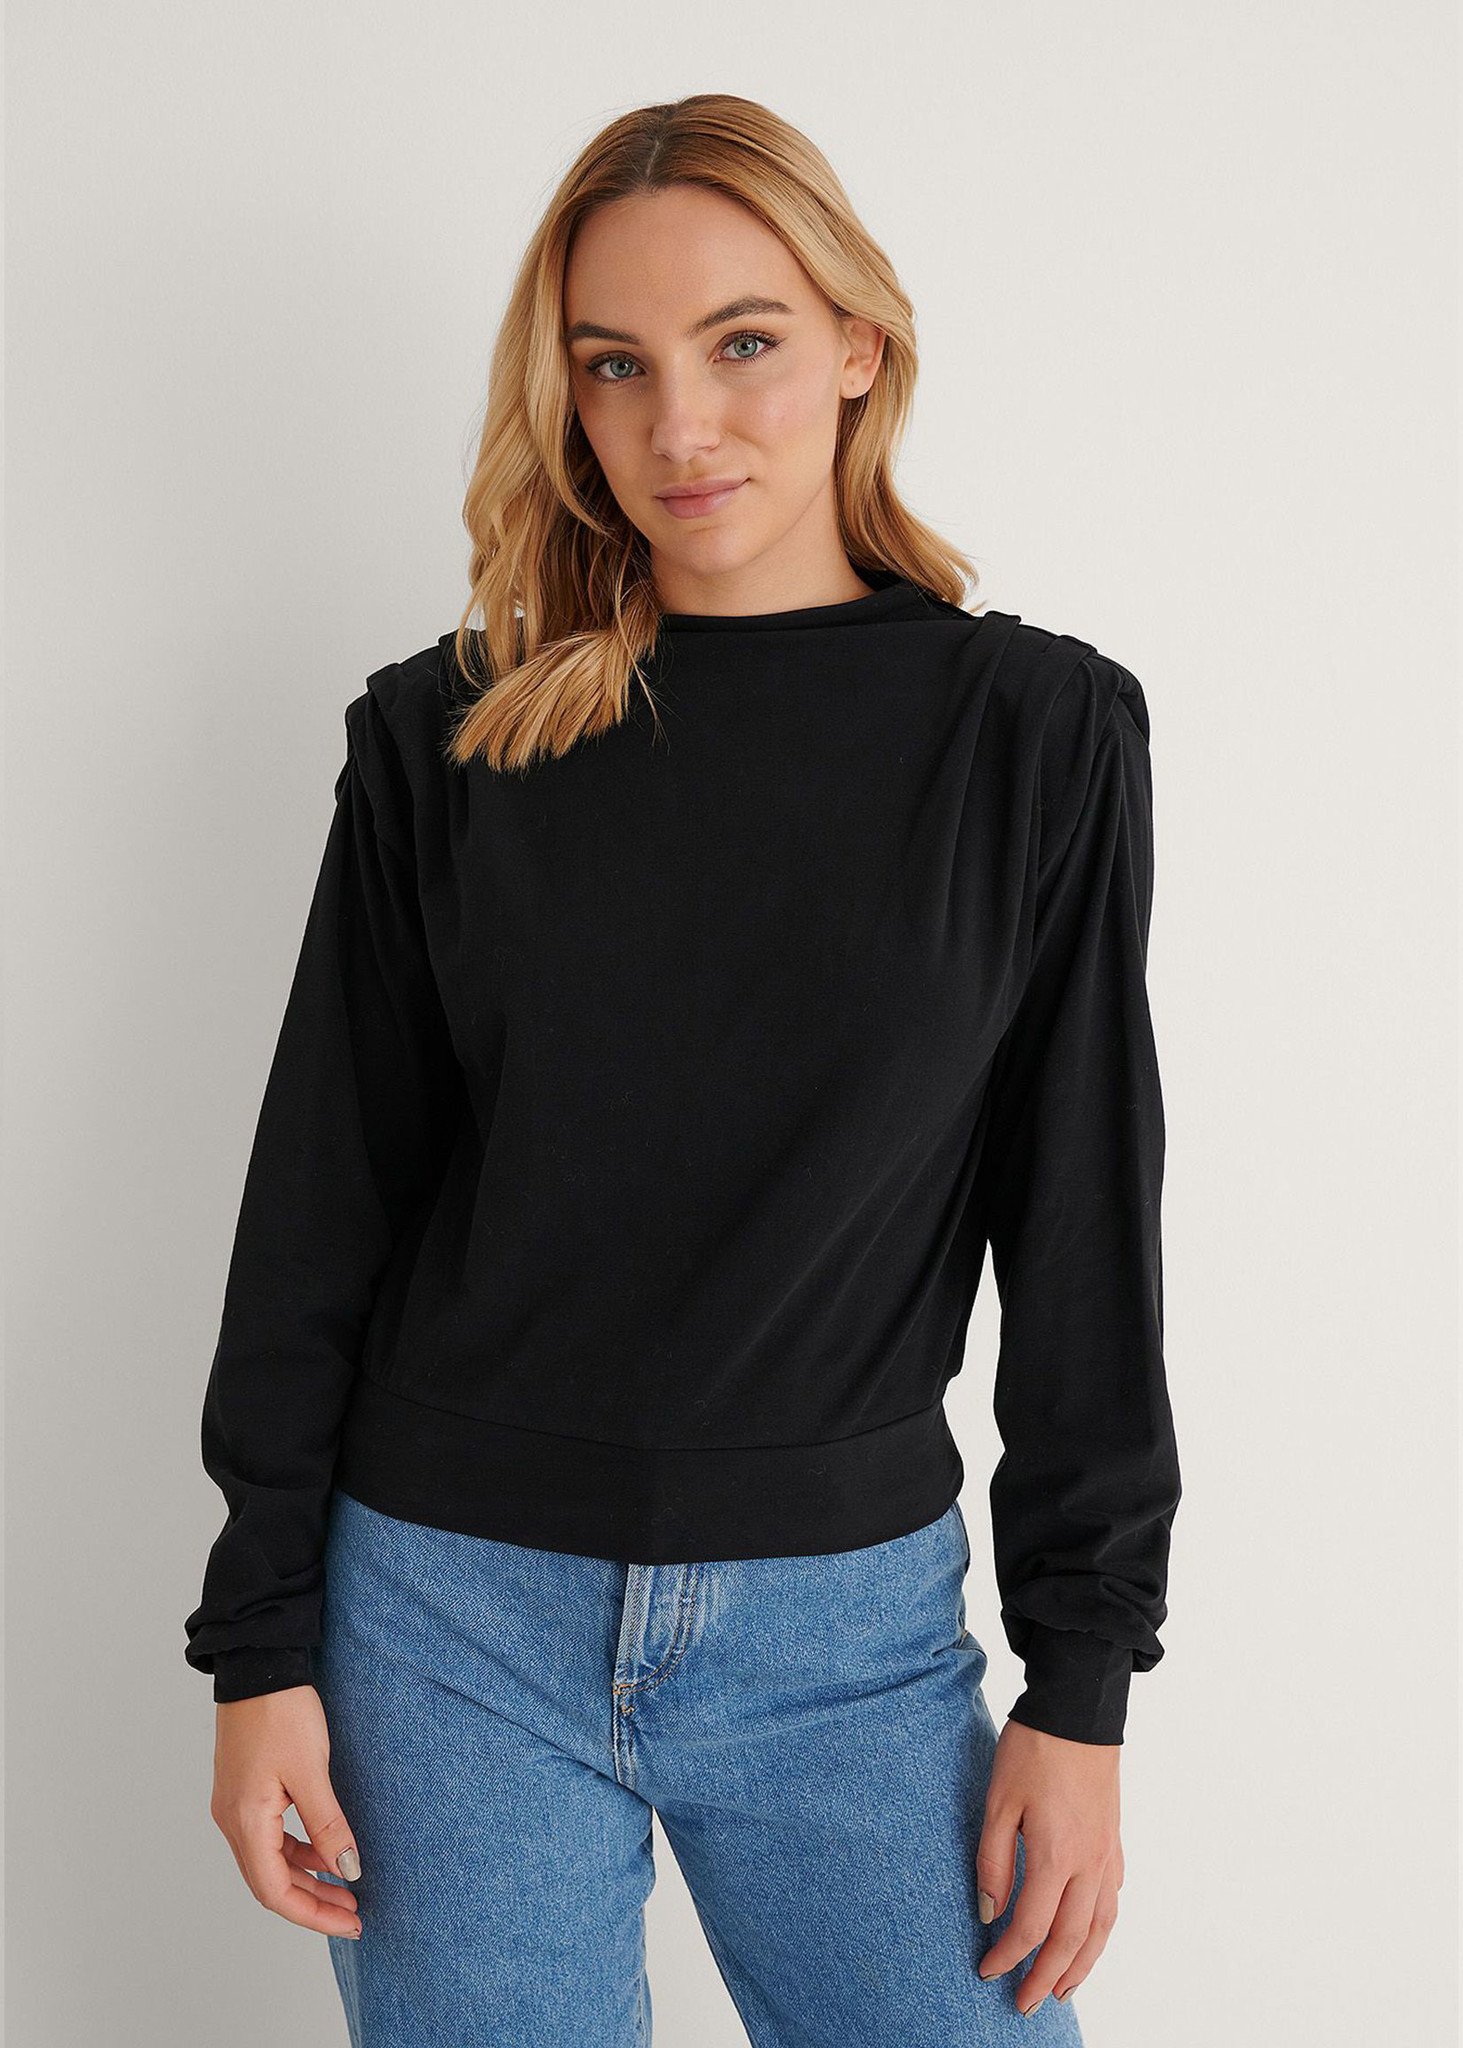 Pleated Detail Sweater Black-1